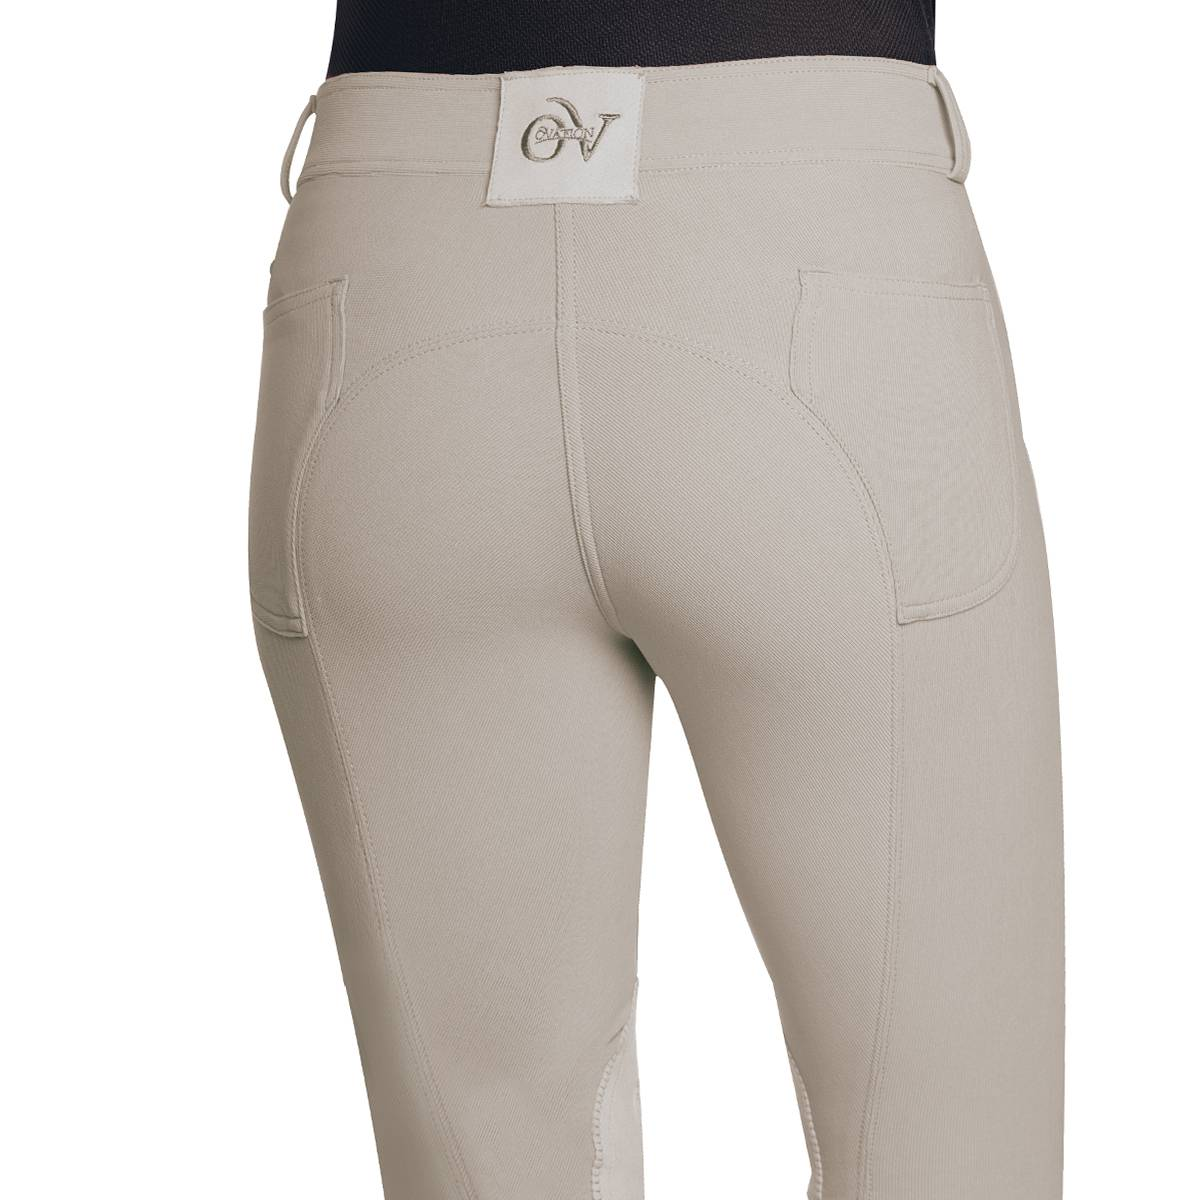 Ovation Endura CLN Kneepatch Tights - Ladies